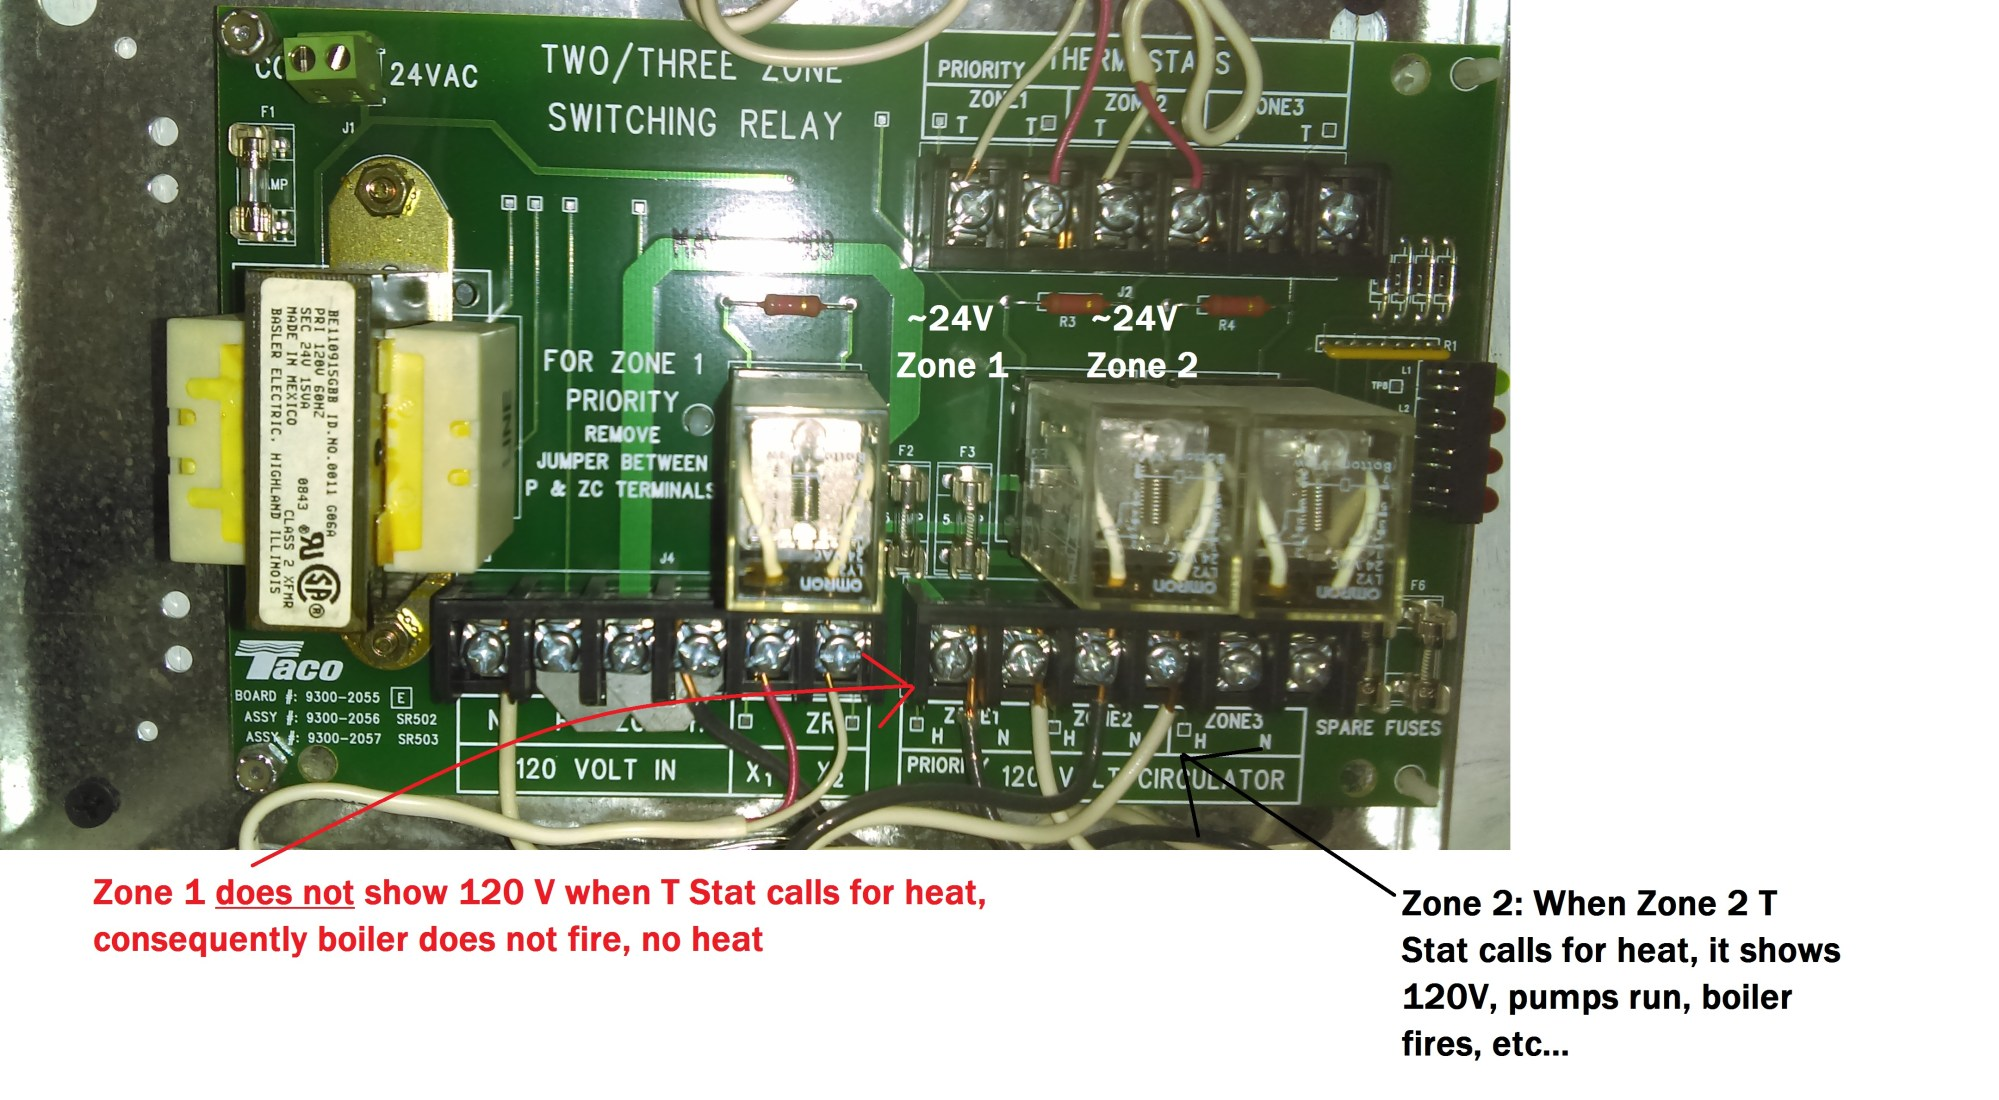 hight resolution of taco 502 wiring diagram wiring diagrams rh 25 jennifer retzke de taco sr502 4 switching relay wiring diagram taco sr502 wiring help